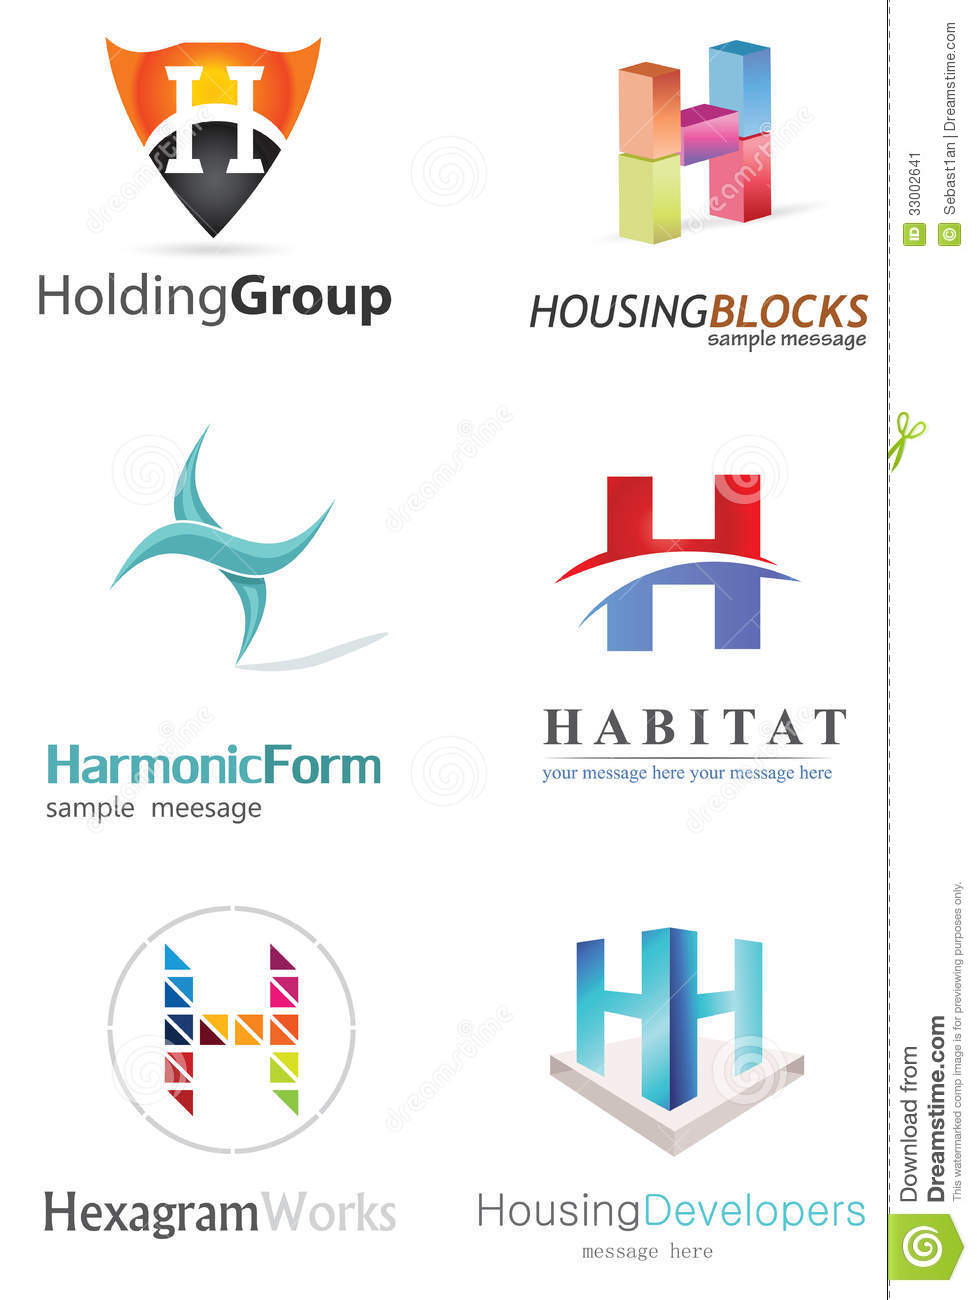 Stock Image Letter H Logo Alphabetical Design Concepts Image33002641 on Letter M Crafts